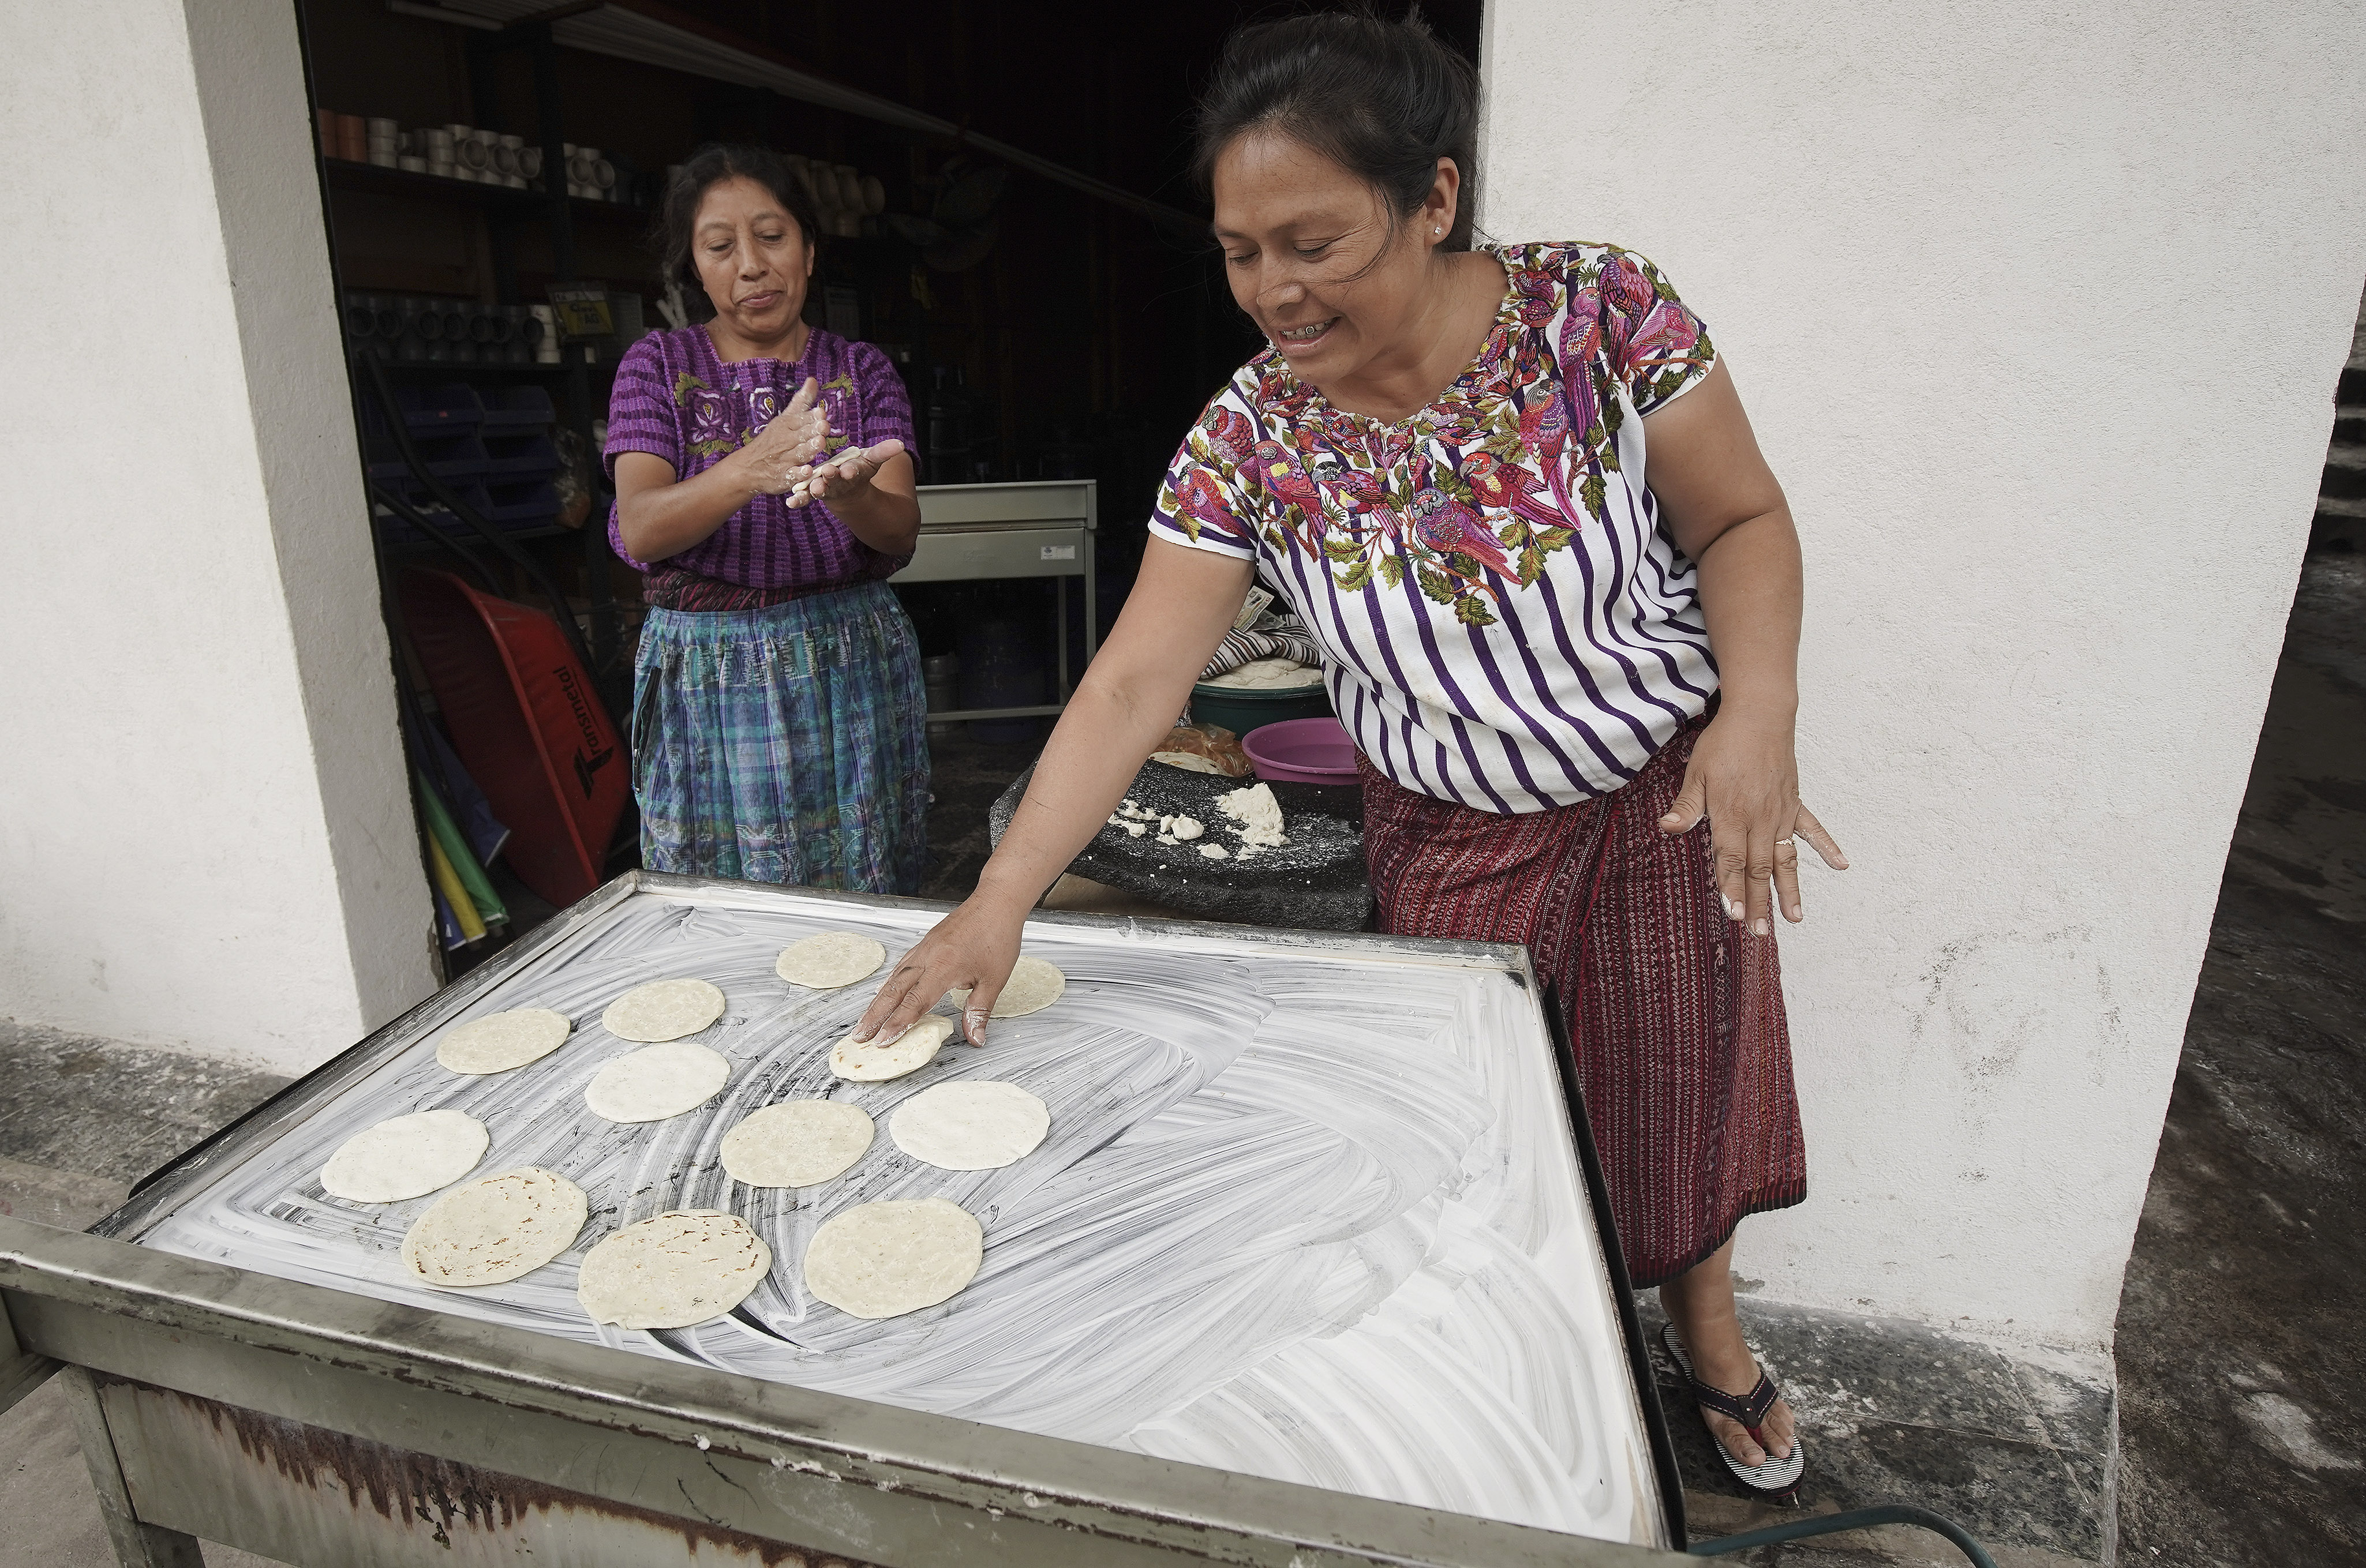 Women make corn tortillas in Santiago, Guatemala, on Sunday, Aug. 18, 2019. President Russell M. Nelson of The Church of Jesus Christ of Latter-day Saints spoke in a devotional on Saturday, Aug. 24, in Guatemala City.